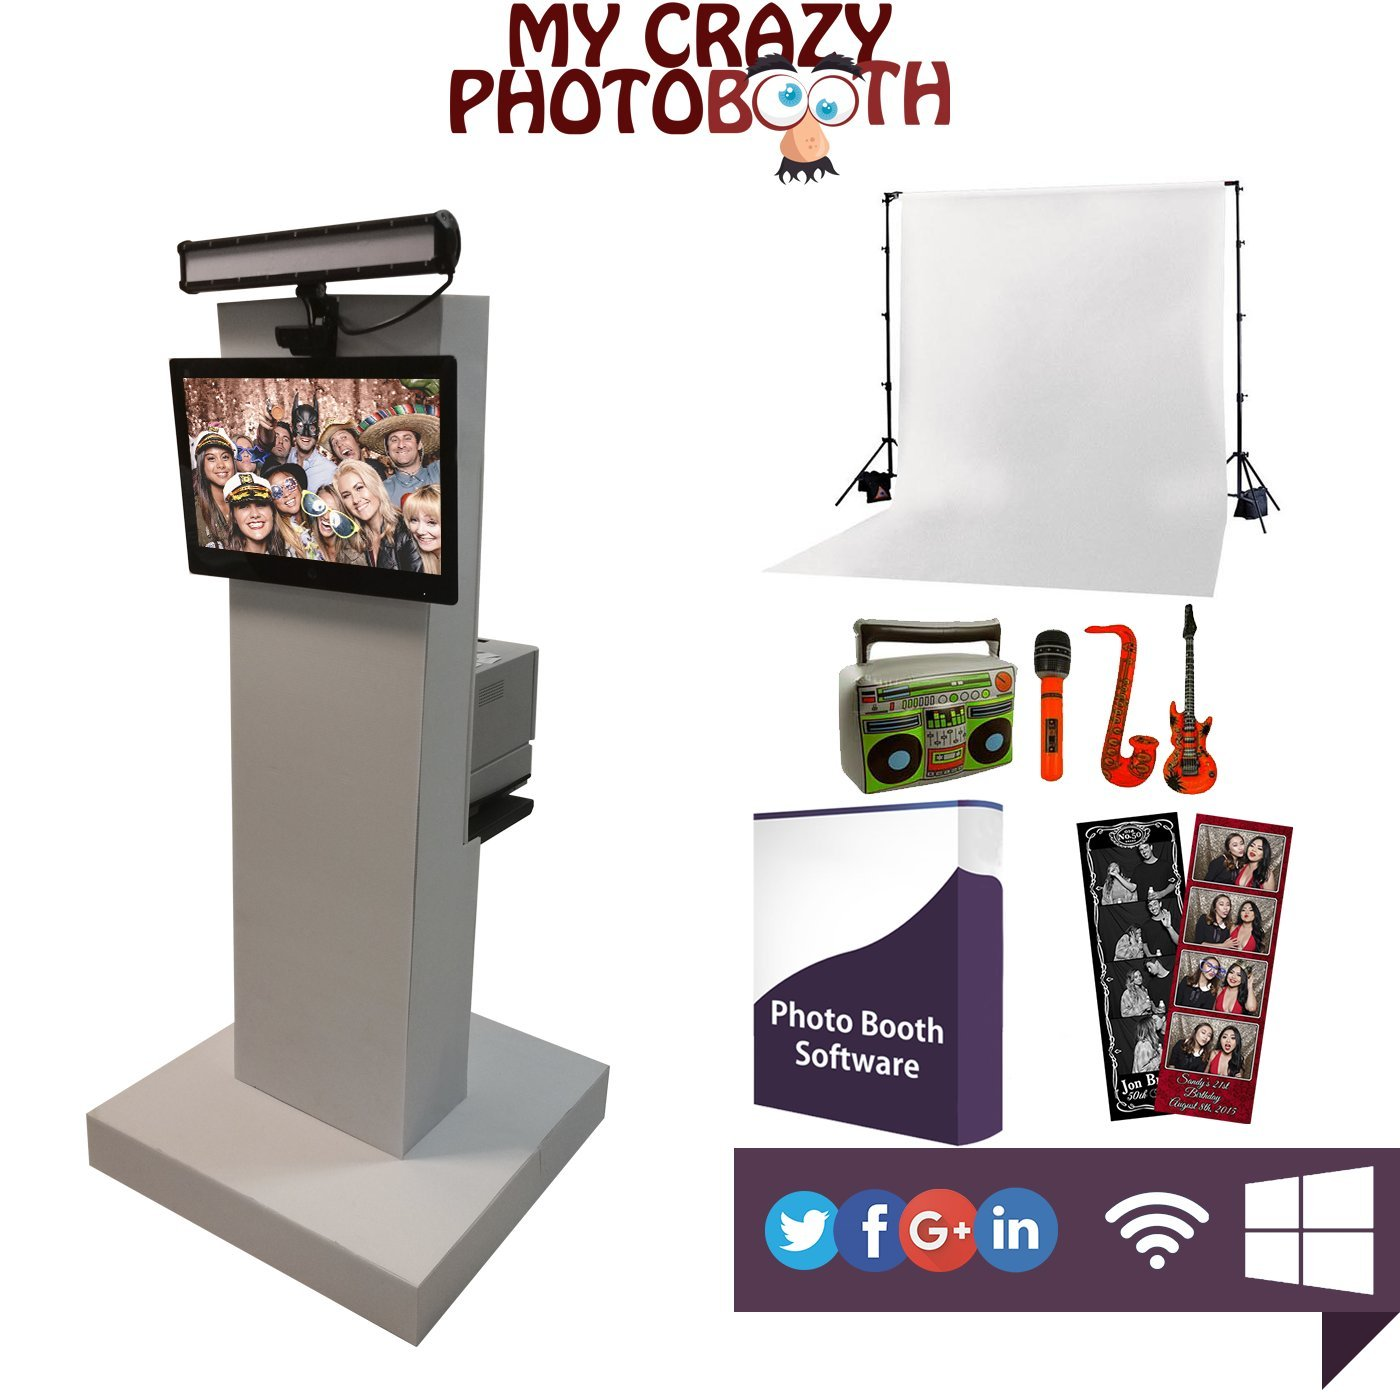 New Crazy Beautiful Complete Photo Booth for Parties Weddings by MYCRAZYPHOTOBOOTH.COM